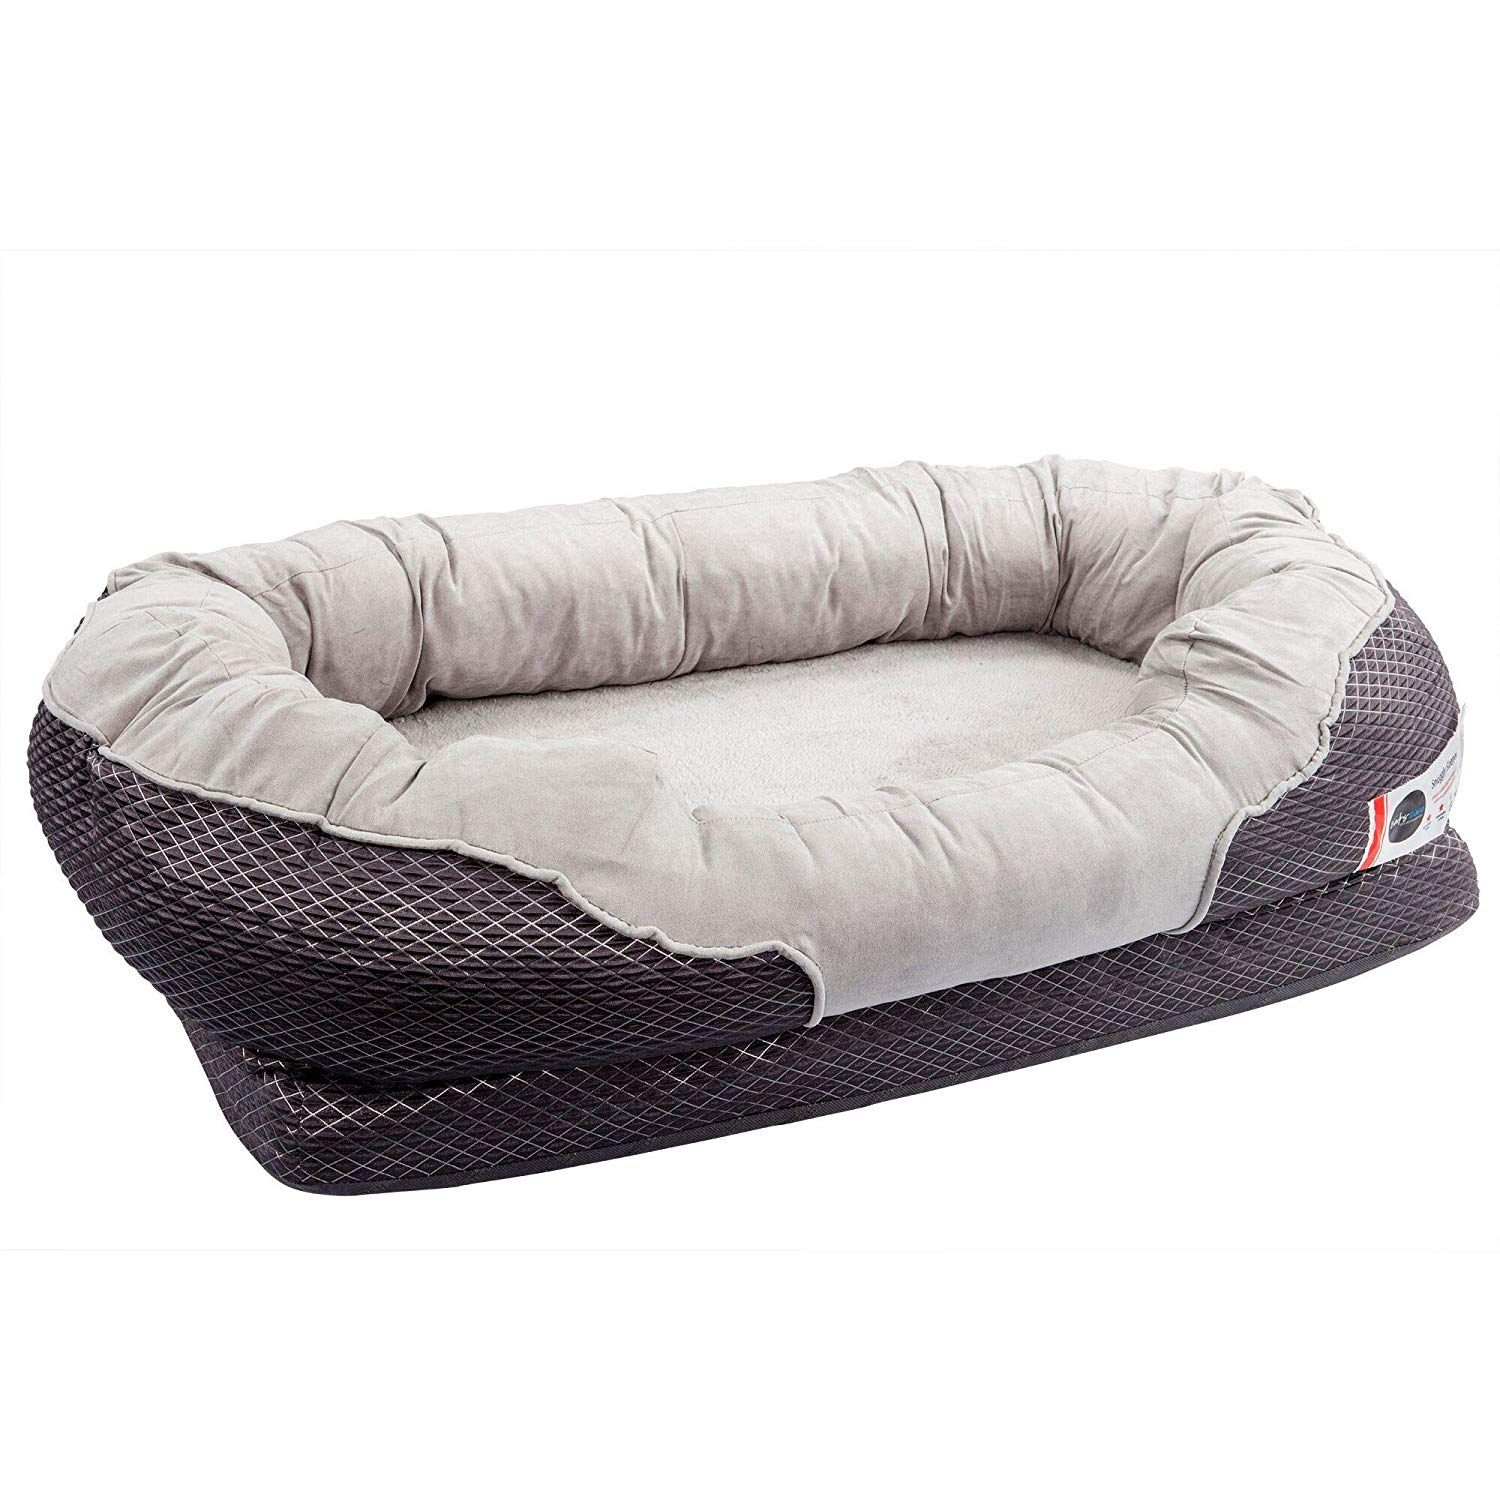 AmazonSmile BarksBar Large Gray Orthopedic Dog Bed 40